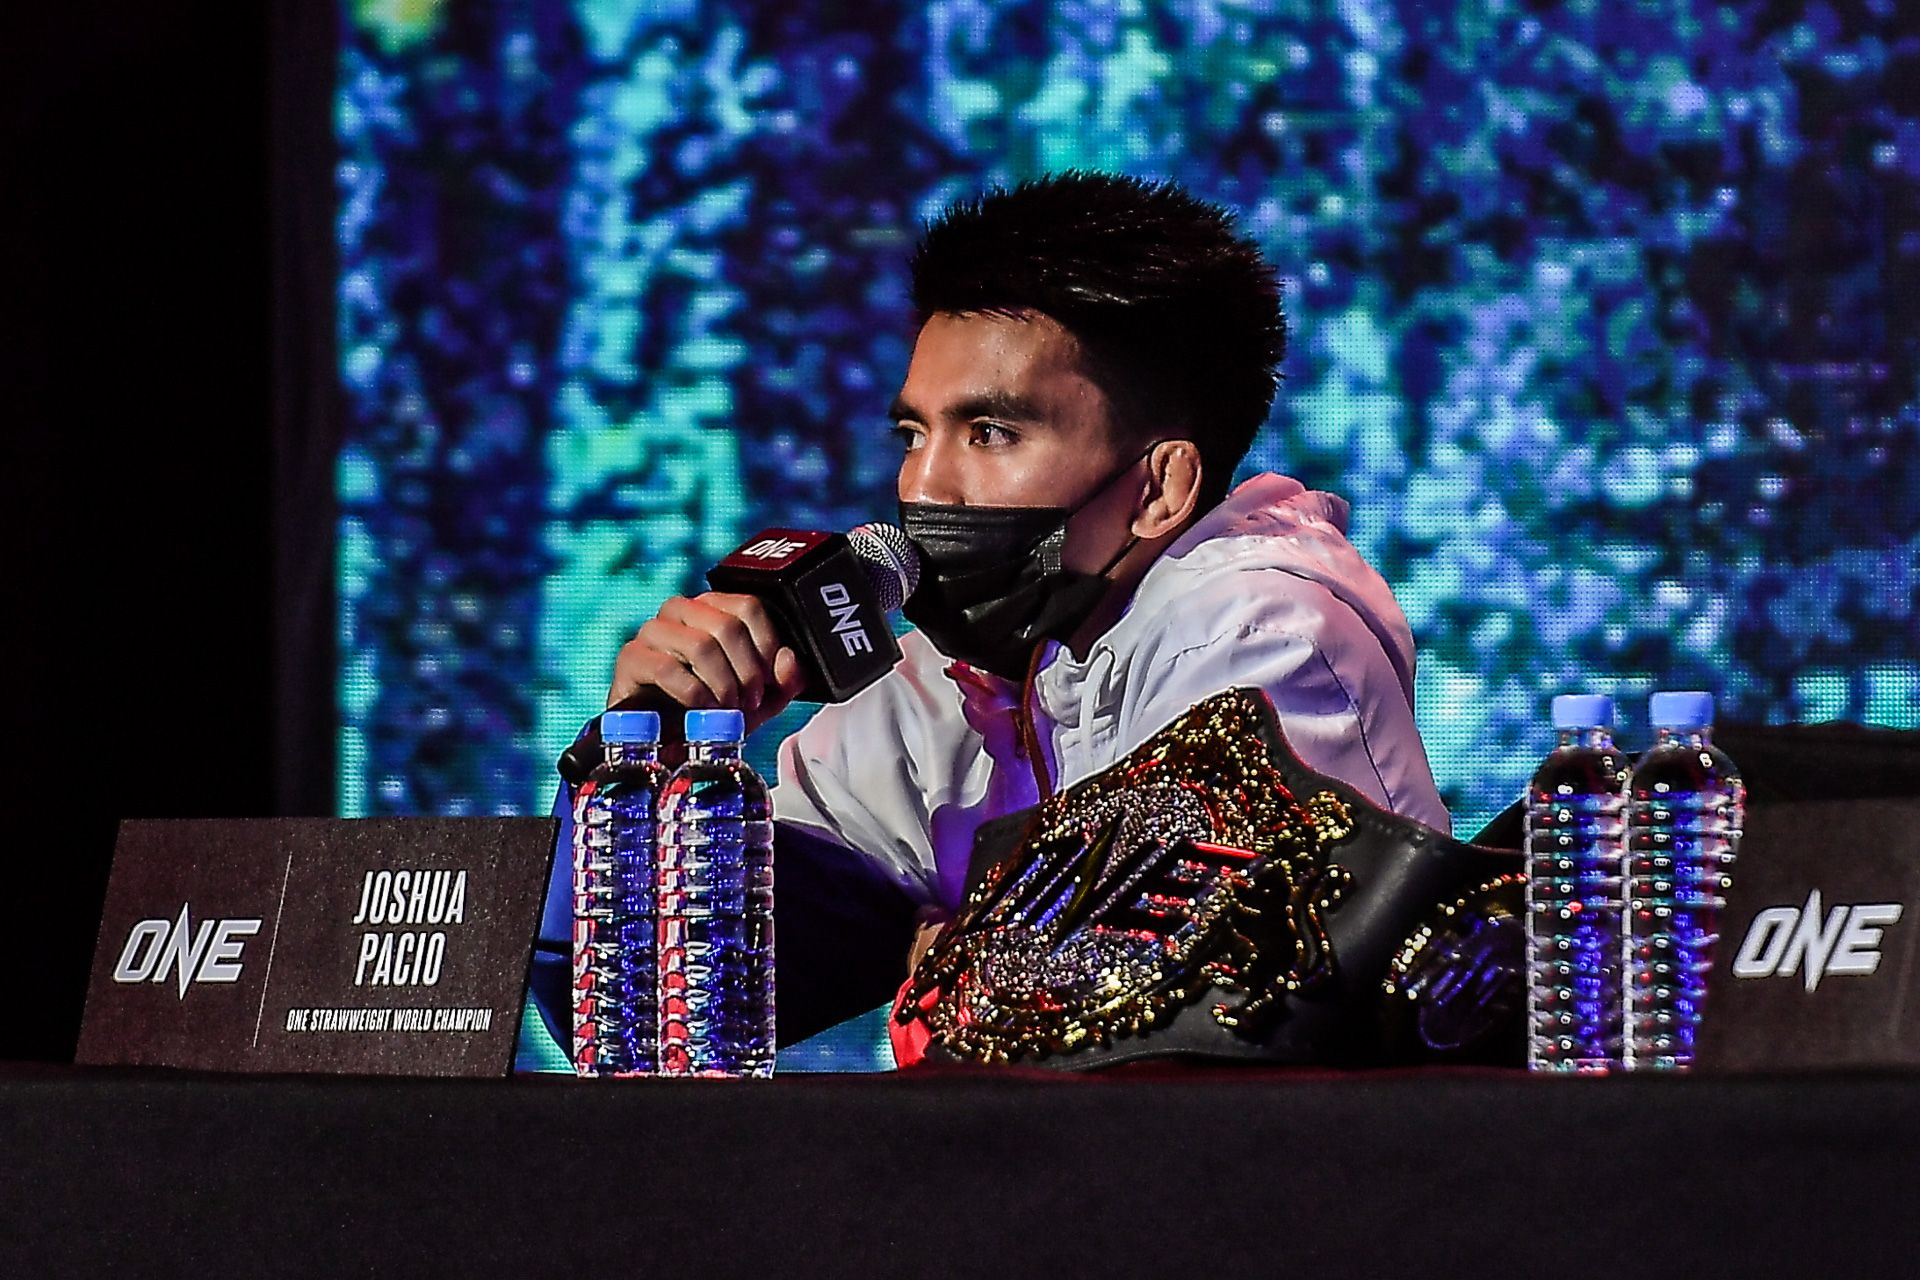 ONE-Revolution-press-conference-Joshua-Pacio Pacio says Saruta trilogy bout will be one of his defining moments Mixed Martial Arts News ONE Championship  - philippine sports news